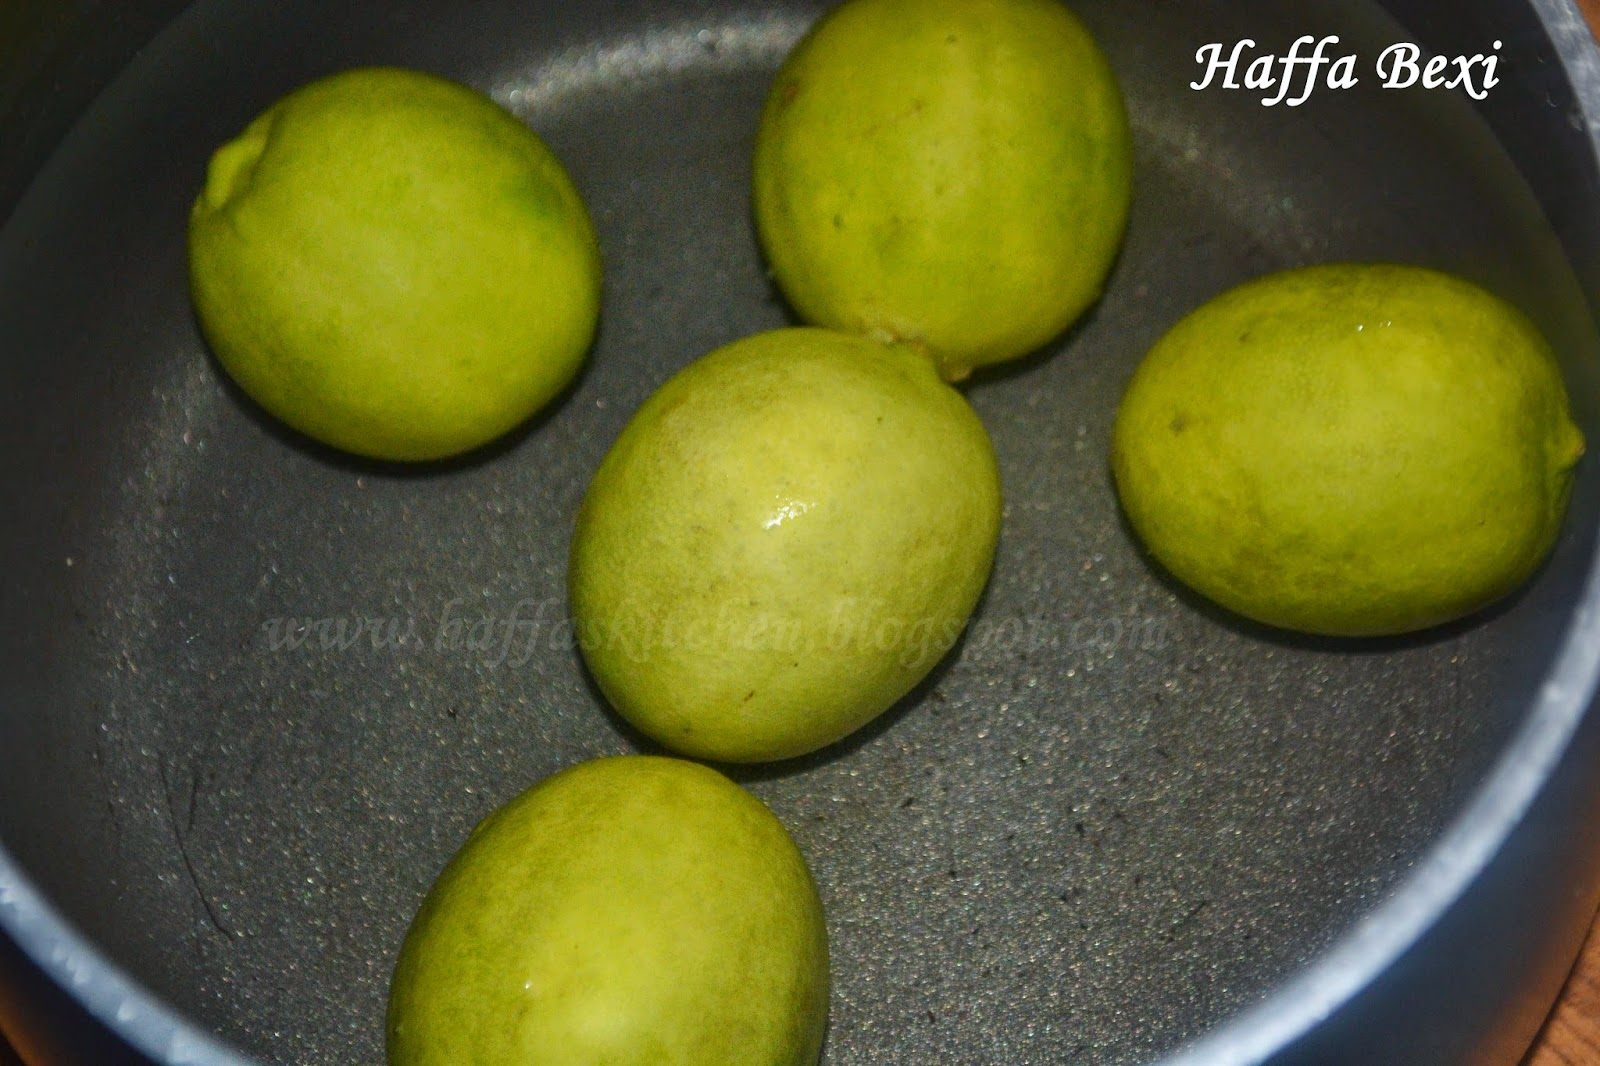 lemon juice| haffas kitchen tips| Kitchen tips| how to get extra juice from lemons